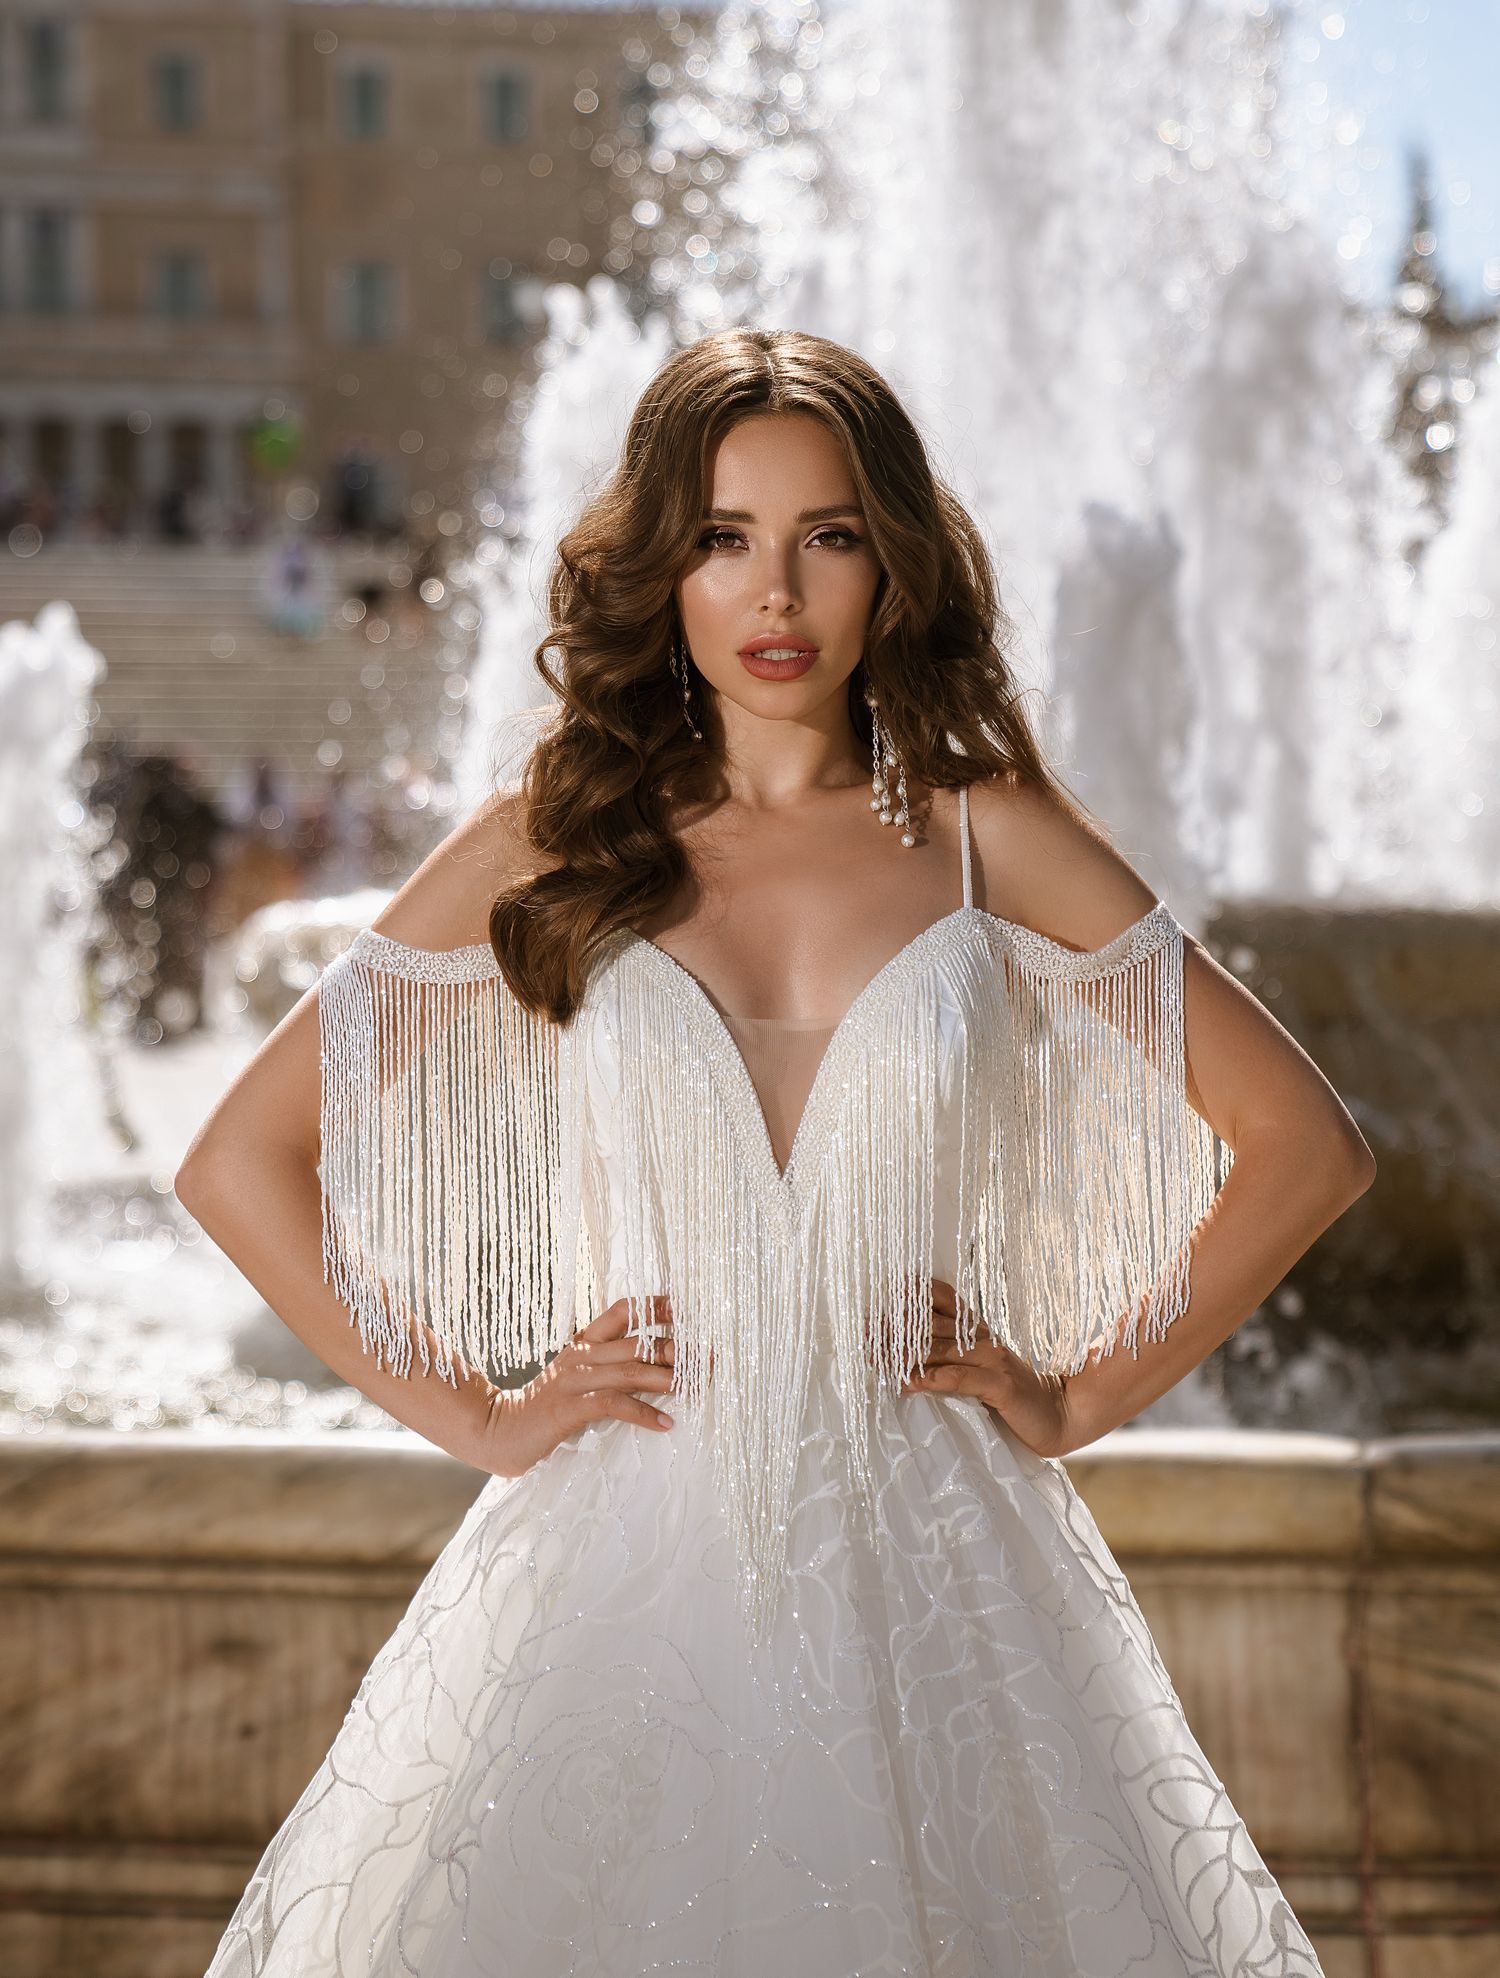 Glittering wedding dress with straps from TM Supernova wholesale-1